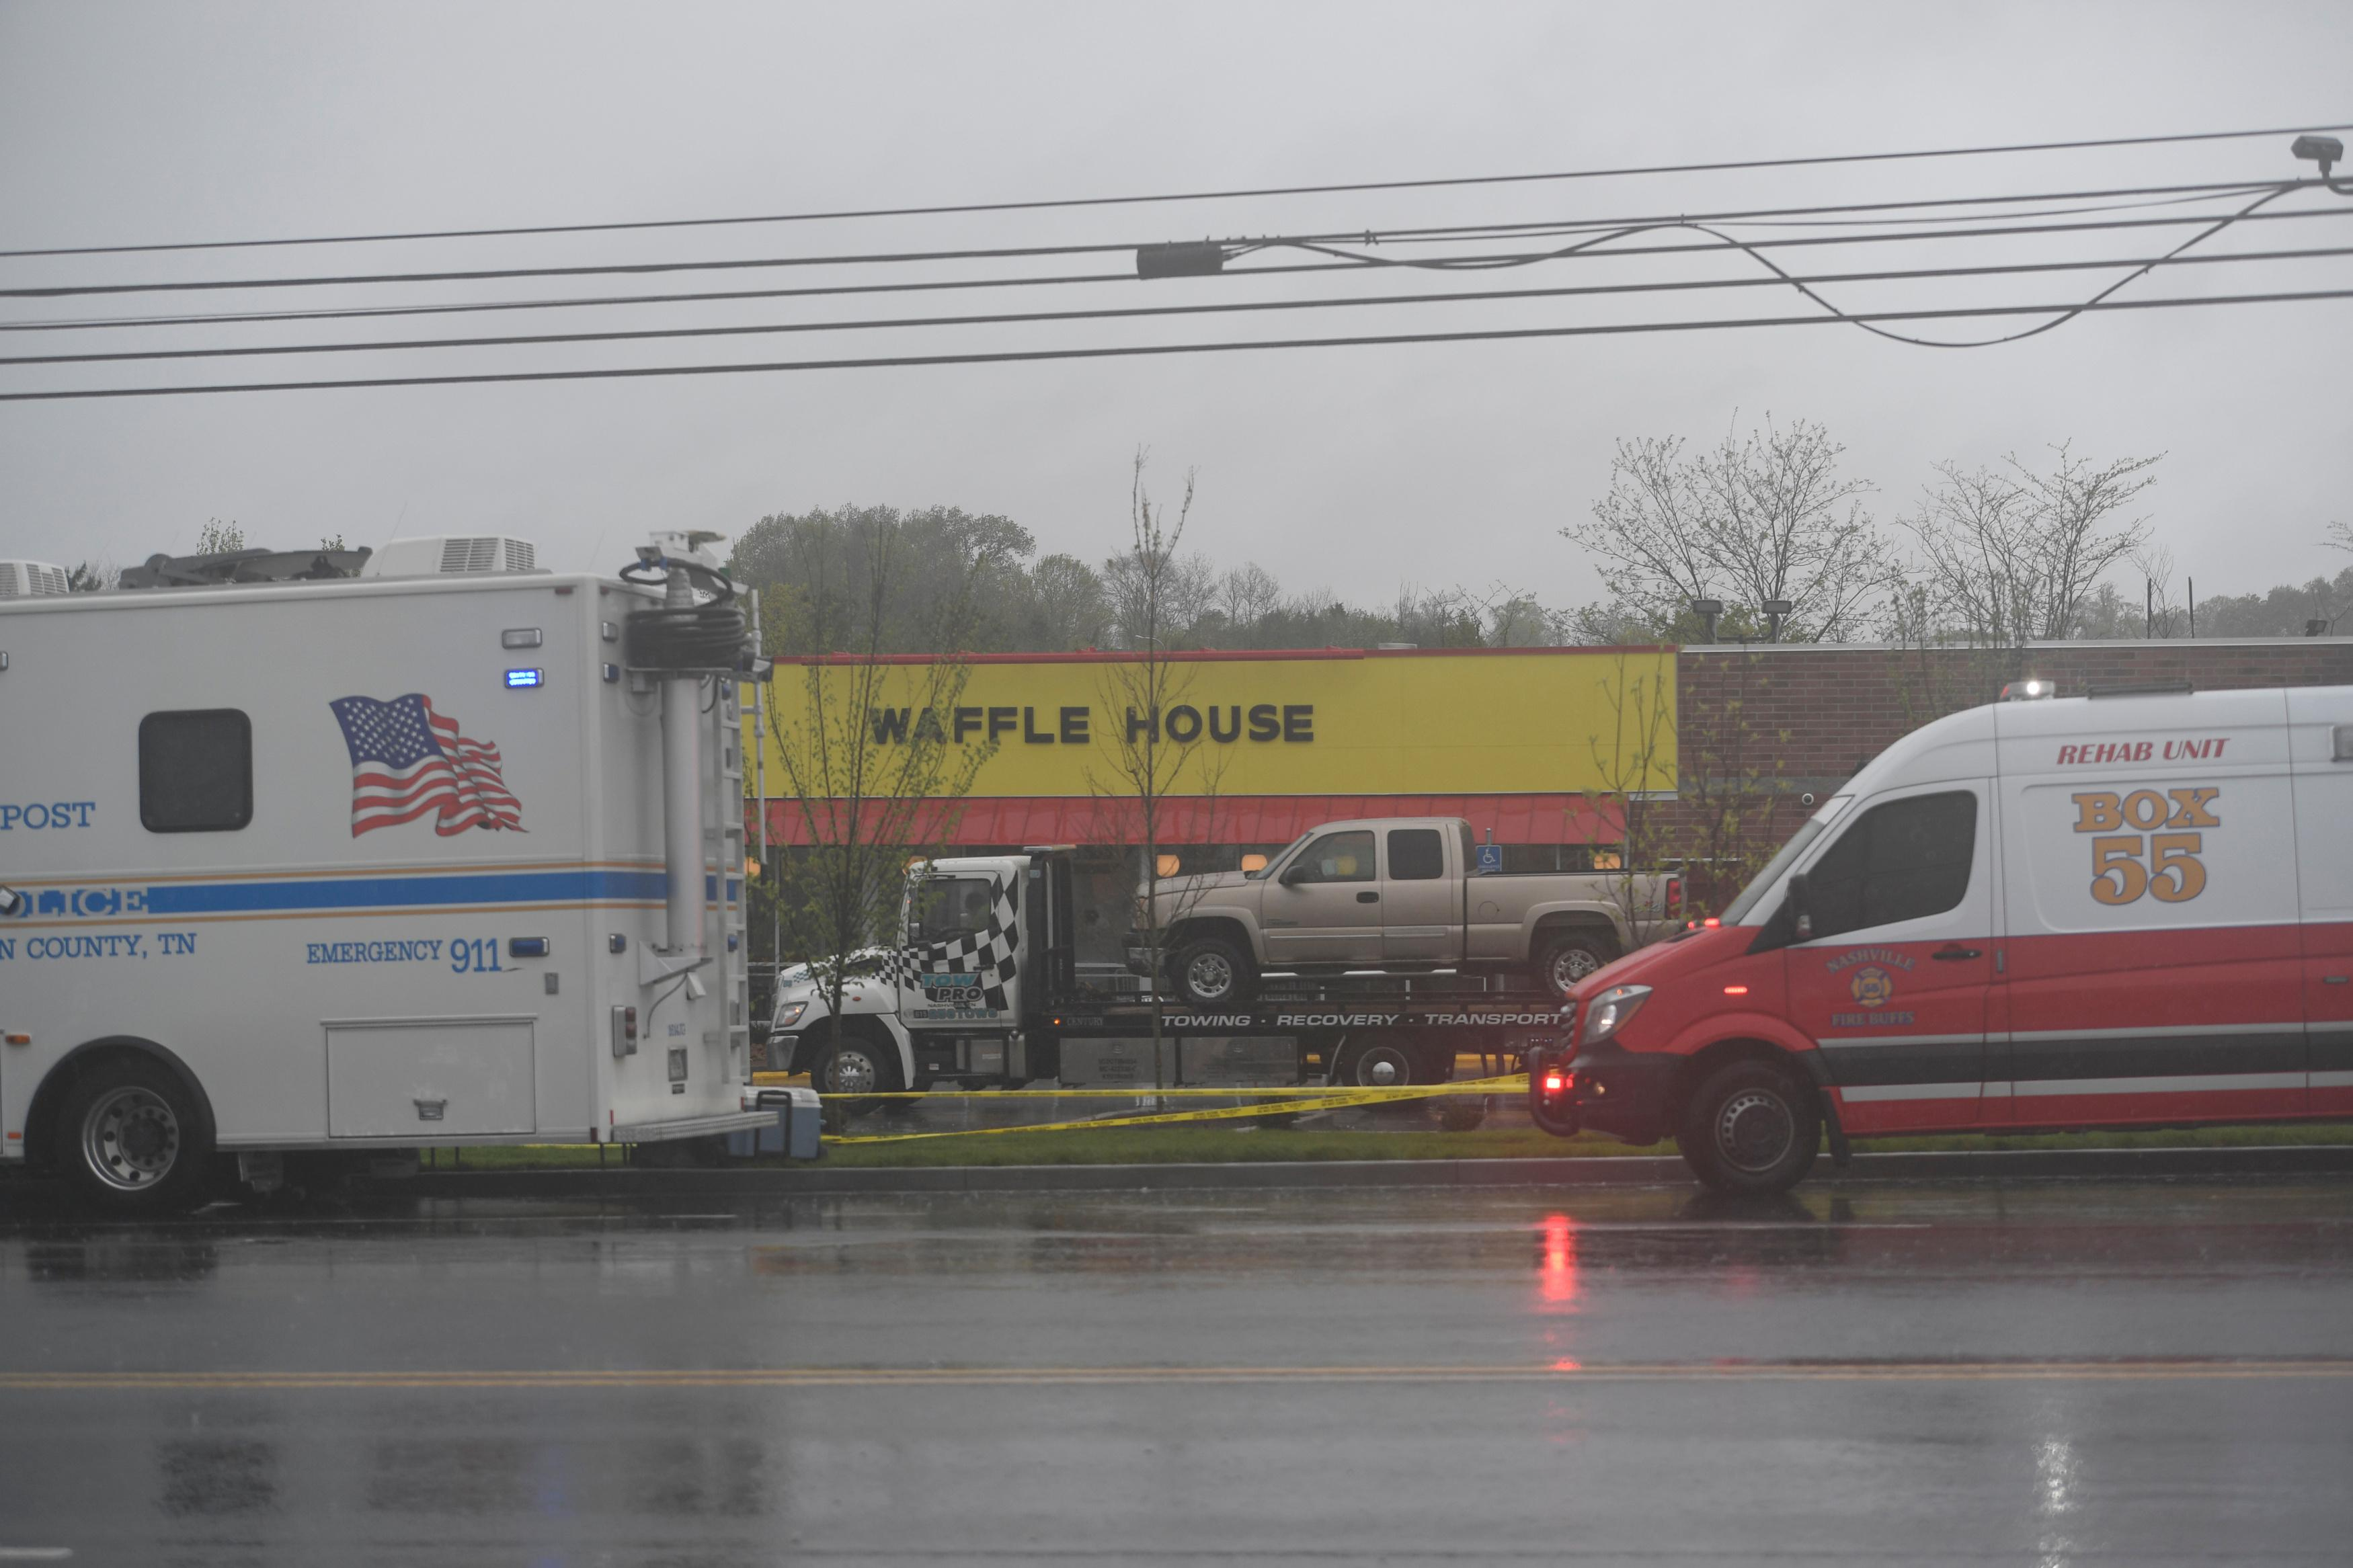 The truck of Travis Reinking, the suspected shooter, is loaded on a trailer ready to be towed from the scene of a fatal shooting at a Waffle House restaurant near Nashville, Tennessee, U.S. April 22, 2018.  Harrison McClary